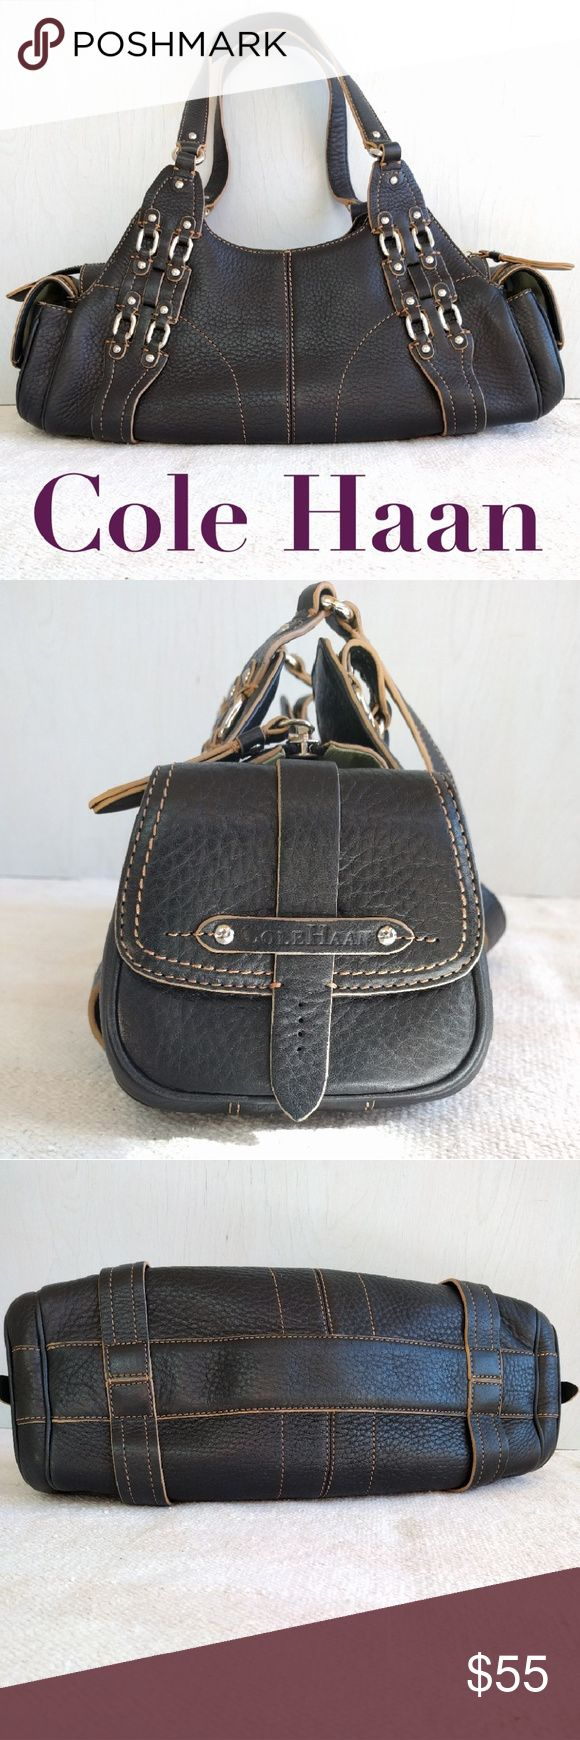 "NWOT Cole Haan leather shoulder bag This rich full grain genuine leather purse by Cole Haan is in perfect condition. Super clean inside and out . Non smoking.   Measures 15"" long and 6"" deep with a strap drop of 9.5"" Beautiful details and silver accents. Good sized interior with a zip closure and two end pockets with magnetic closures. Cole Haan Bags Shoulder Bags"